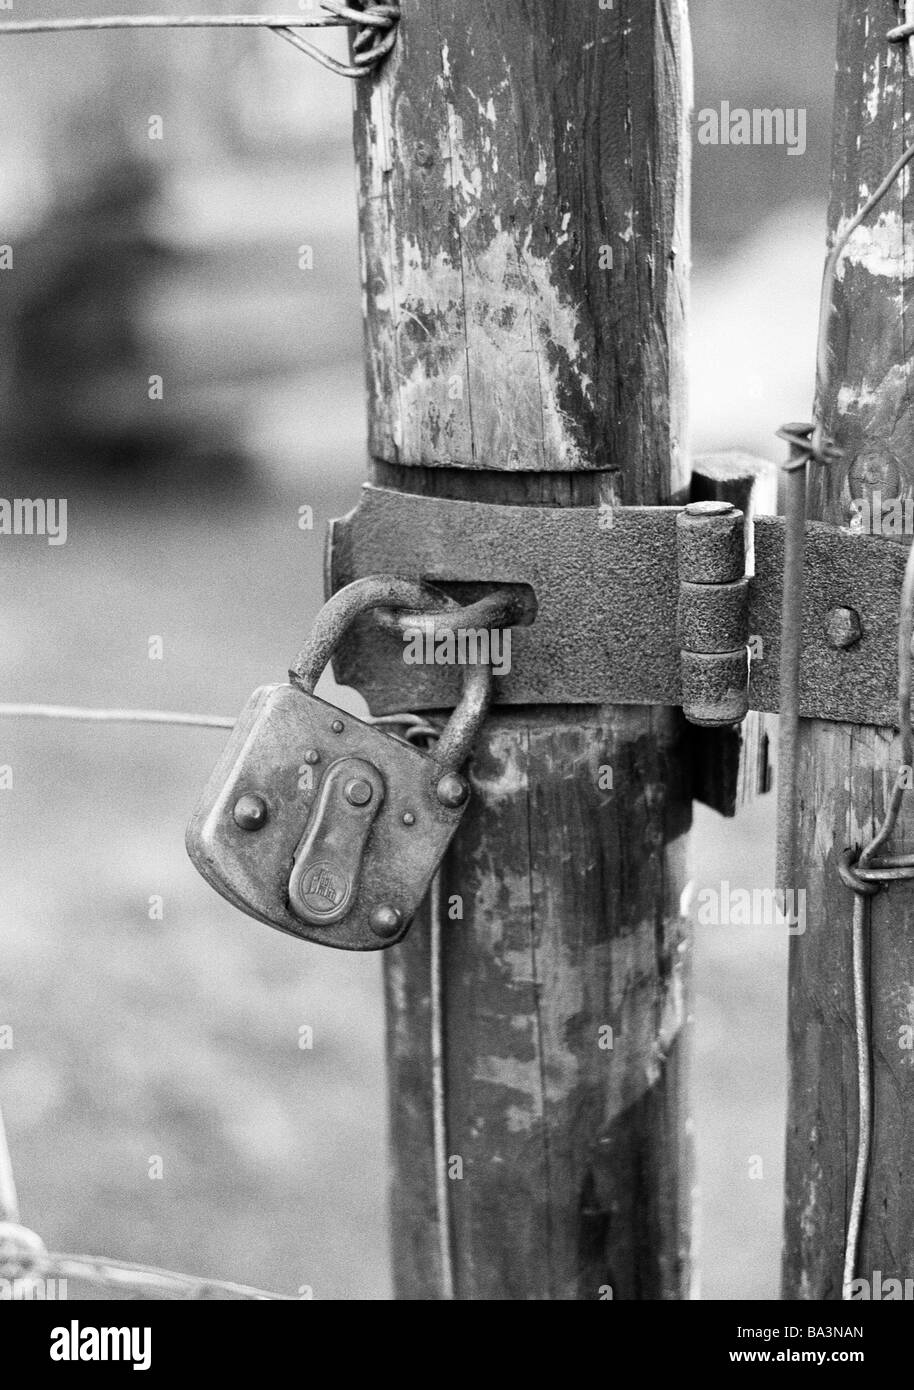 Seventies, black and white photo, symbolic, padlock at a wooden fence, metal fittings Stock Photo